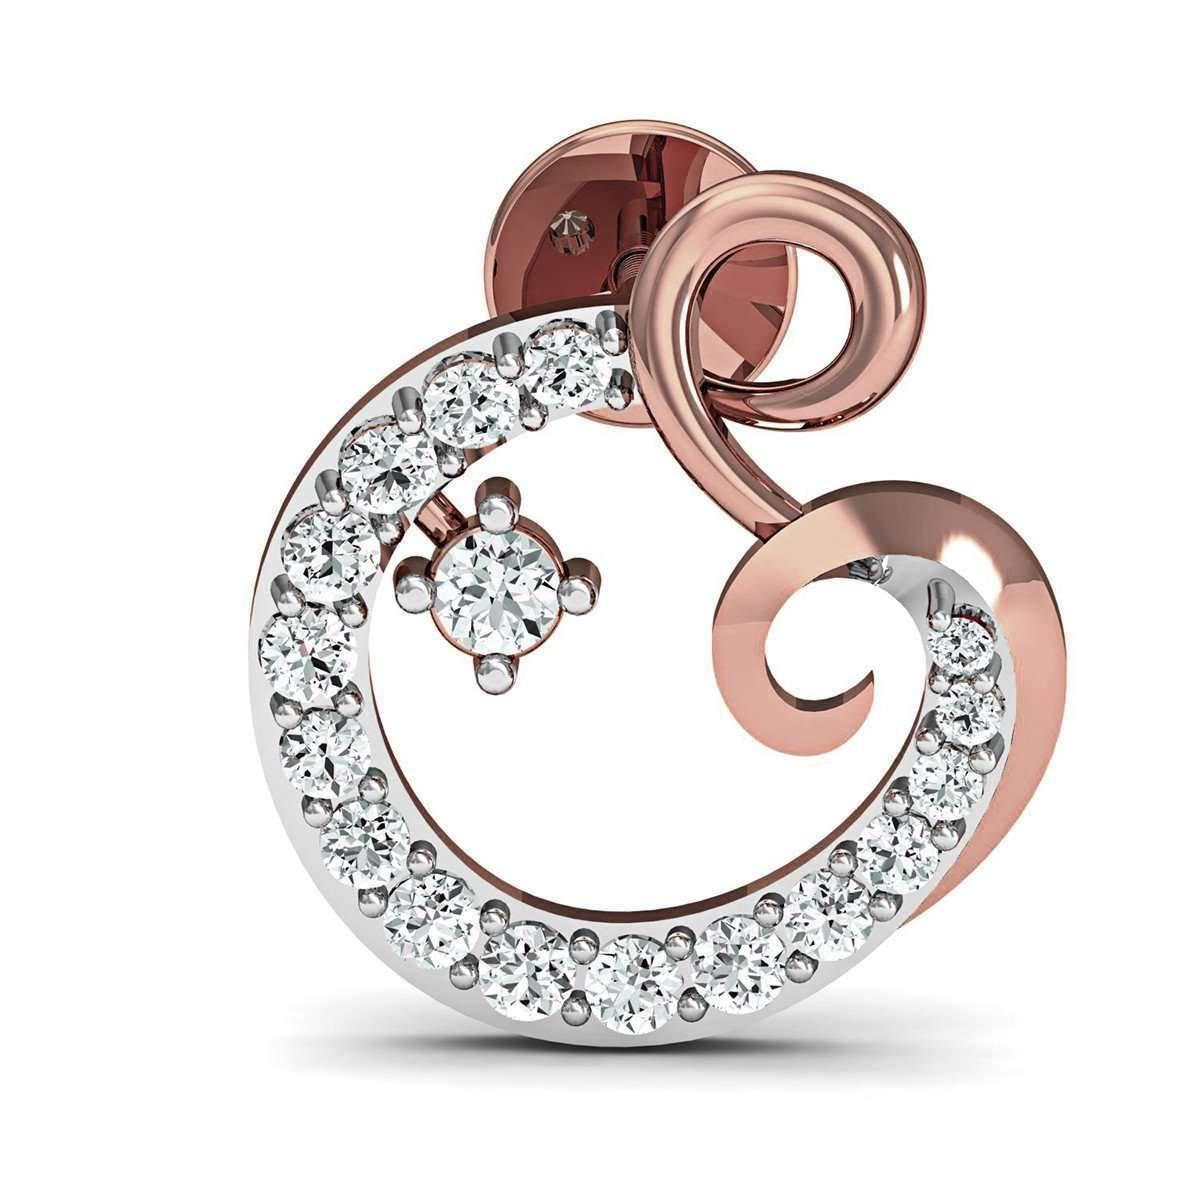 Diamoire Jewels 18kt Rose Gold Pave Earrings Handset with 34 Premium Diamonds CL62Q